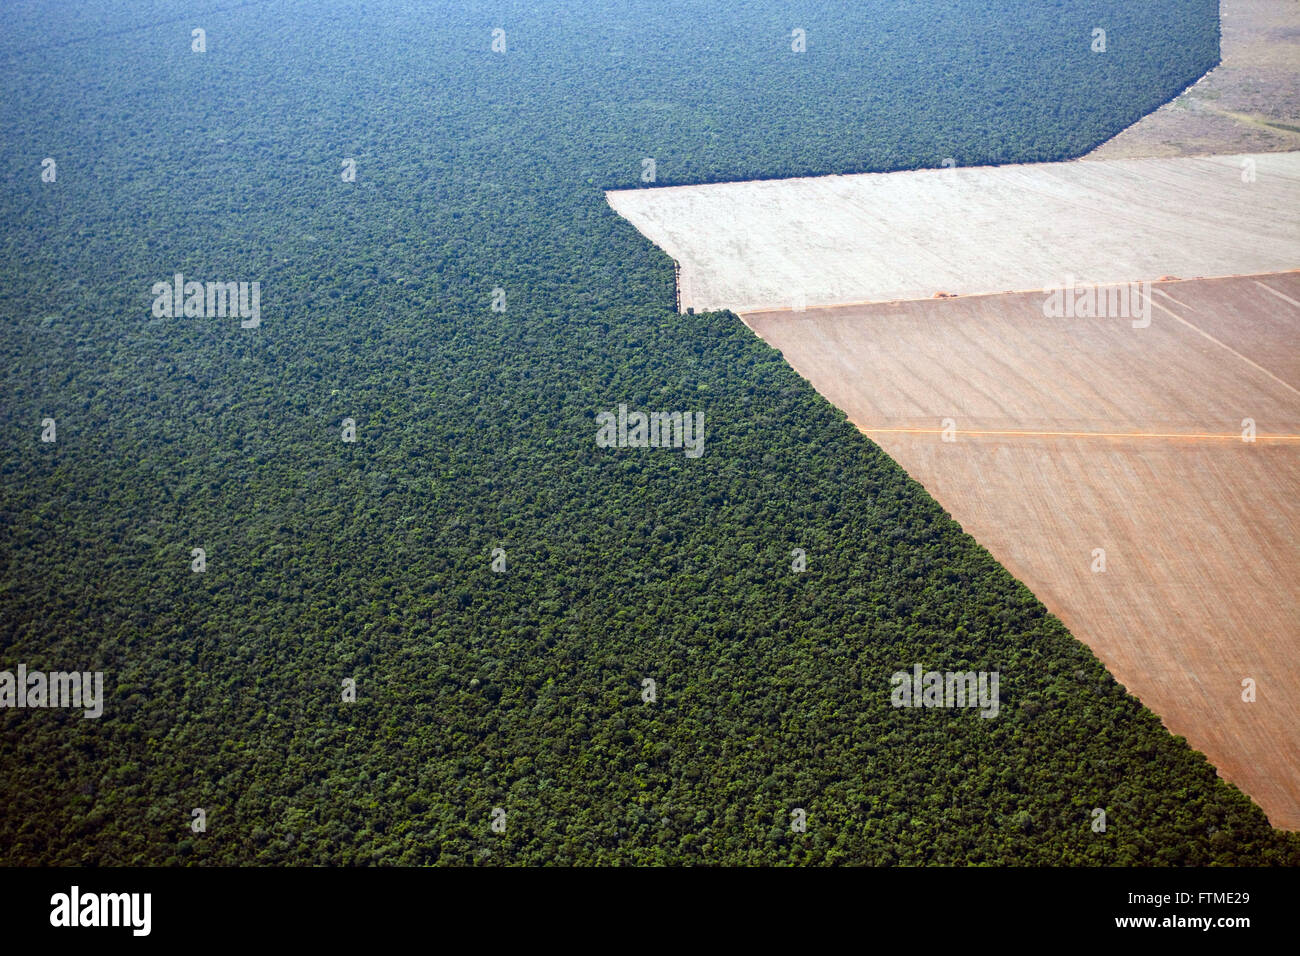 Aerial view of the area preserved and limit area deforested for farming in the middle of Savana - Stock Image